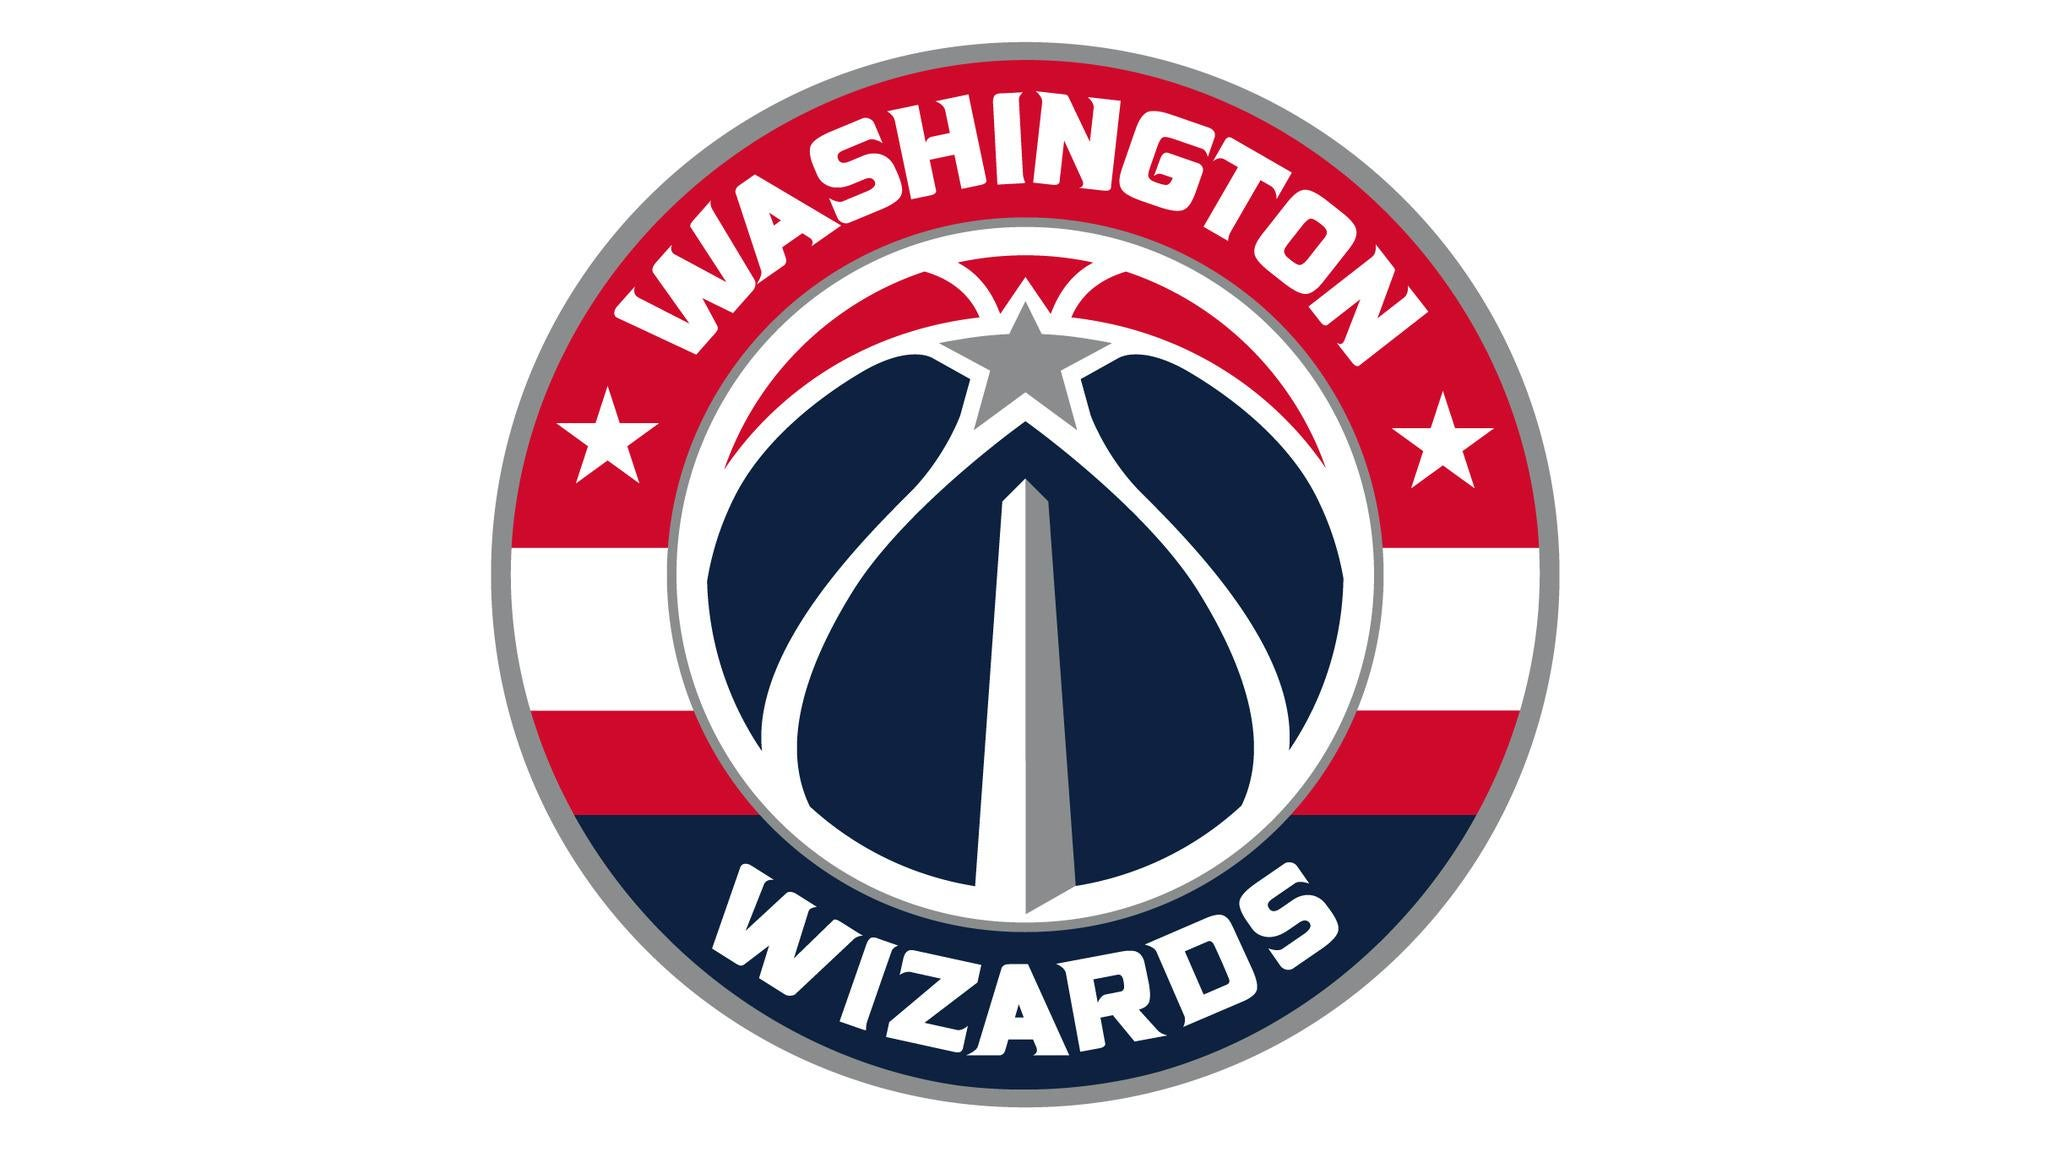 SORRY, THIS EVENT IS NO LONGER ACTIVE<br>Washington Wizards vs. Orlando Magic at Verizon Center - Washington, DC 20004